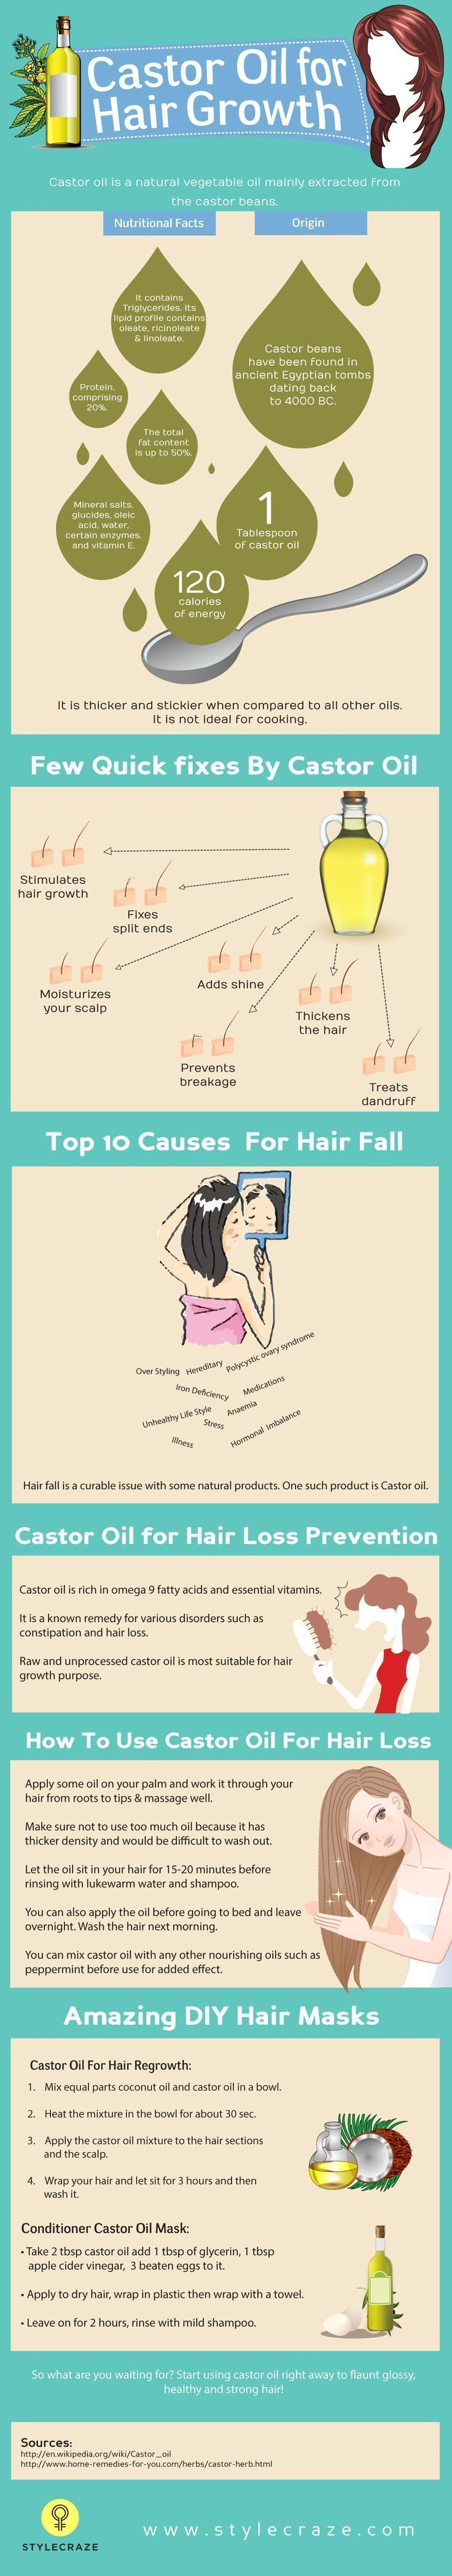 Hair thinning and hair fall is a common problem in both men and women face. This article gives the use of castor oil for hair loss prevention!